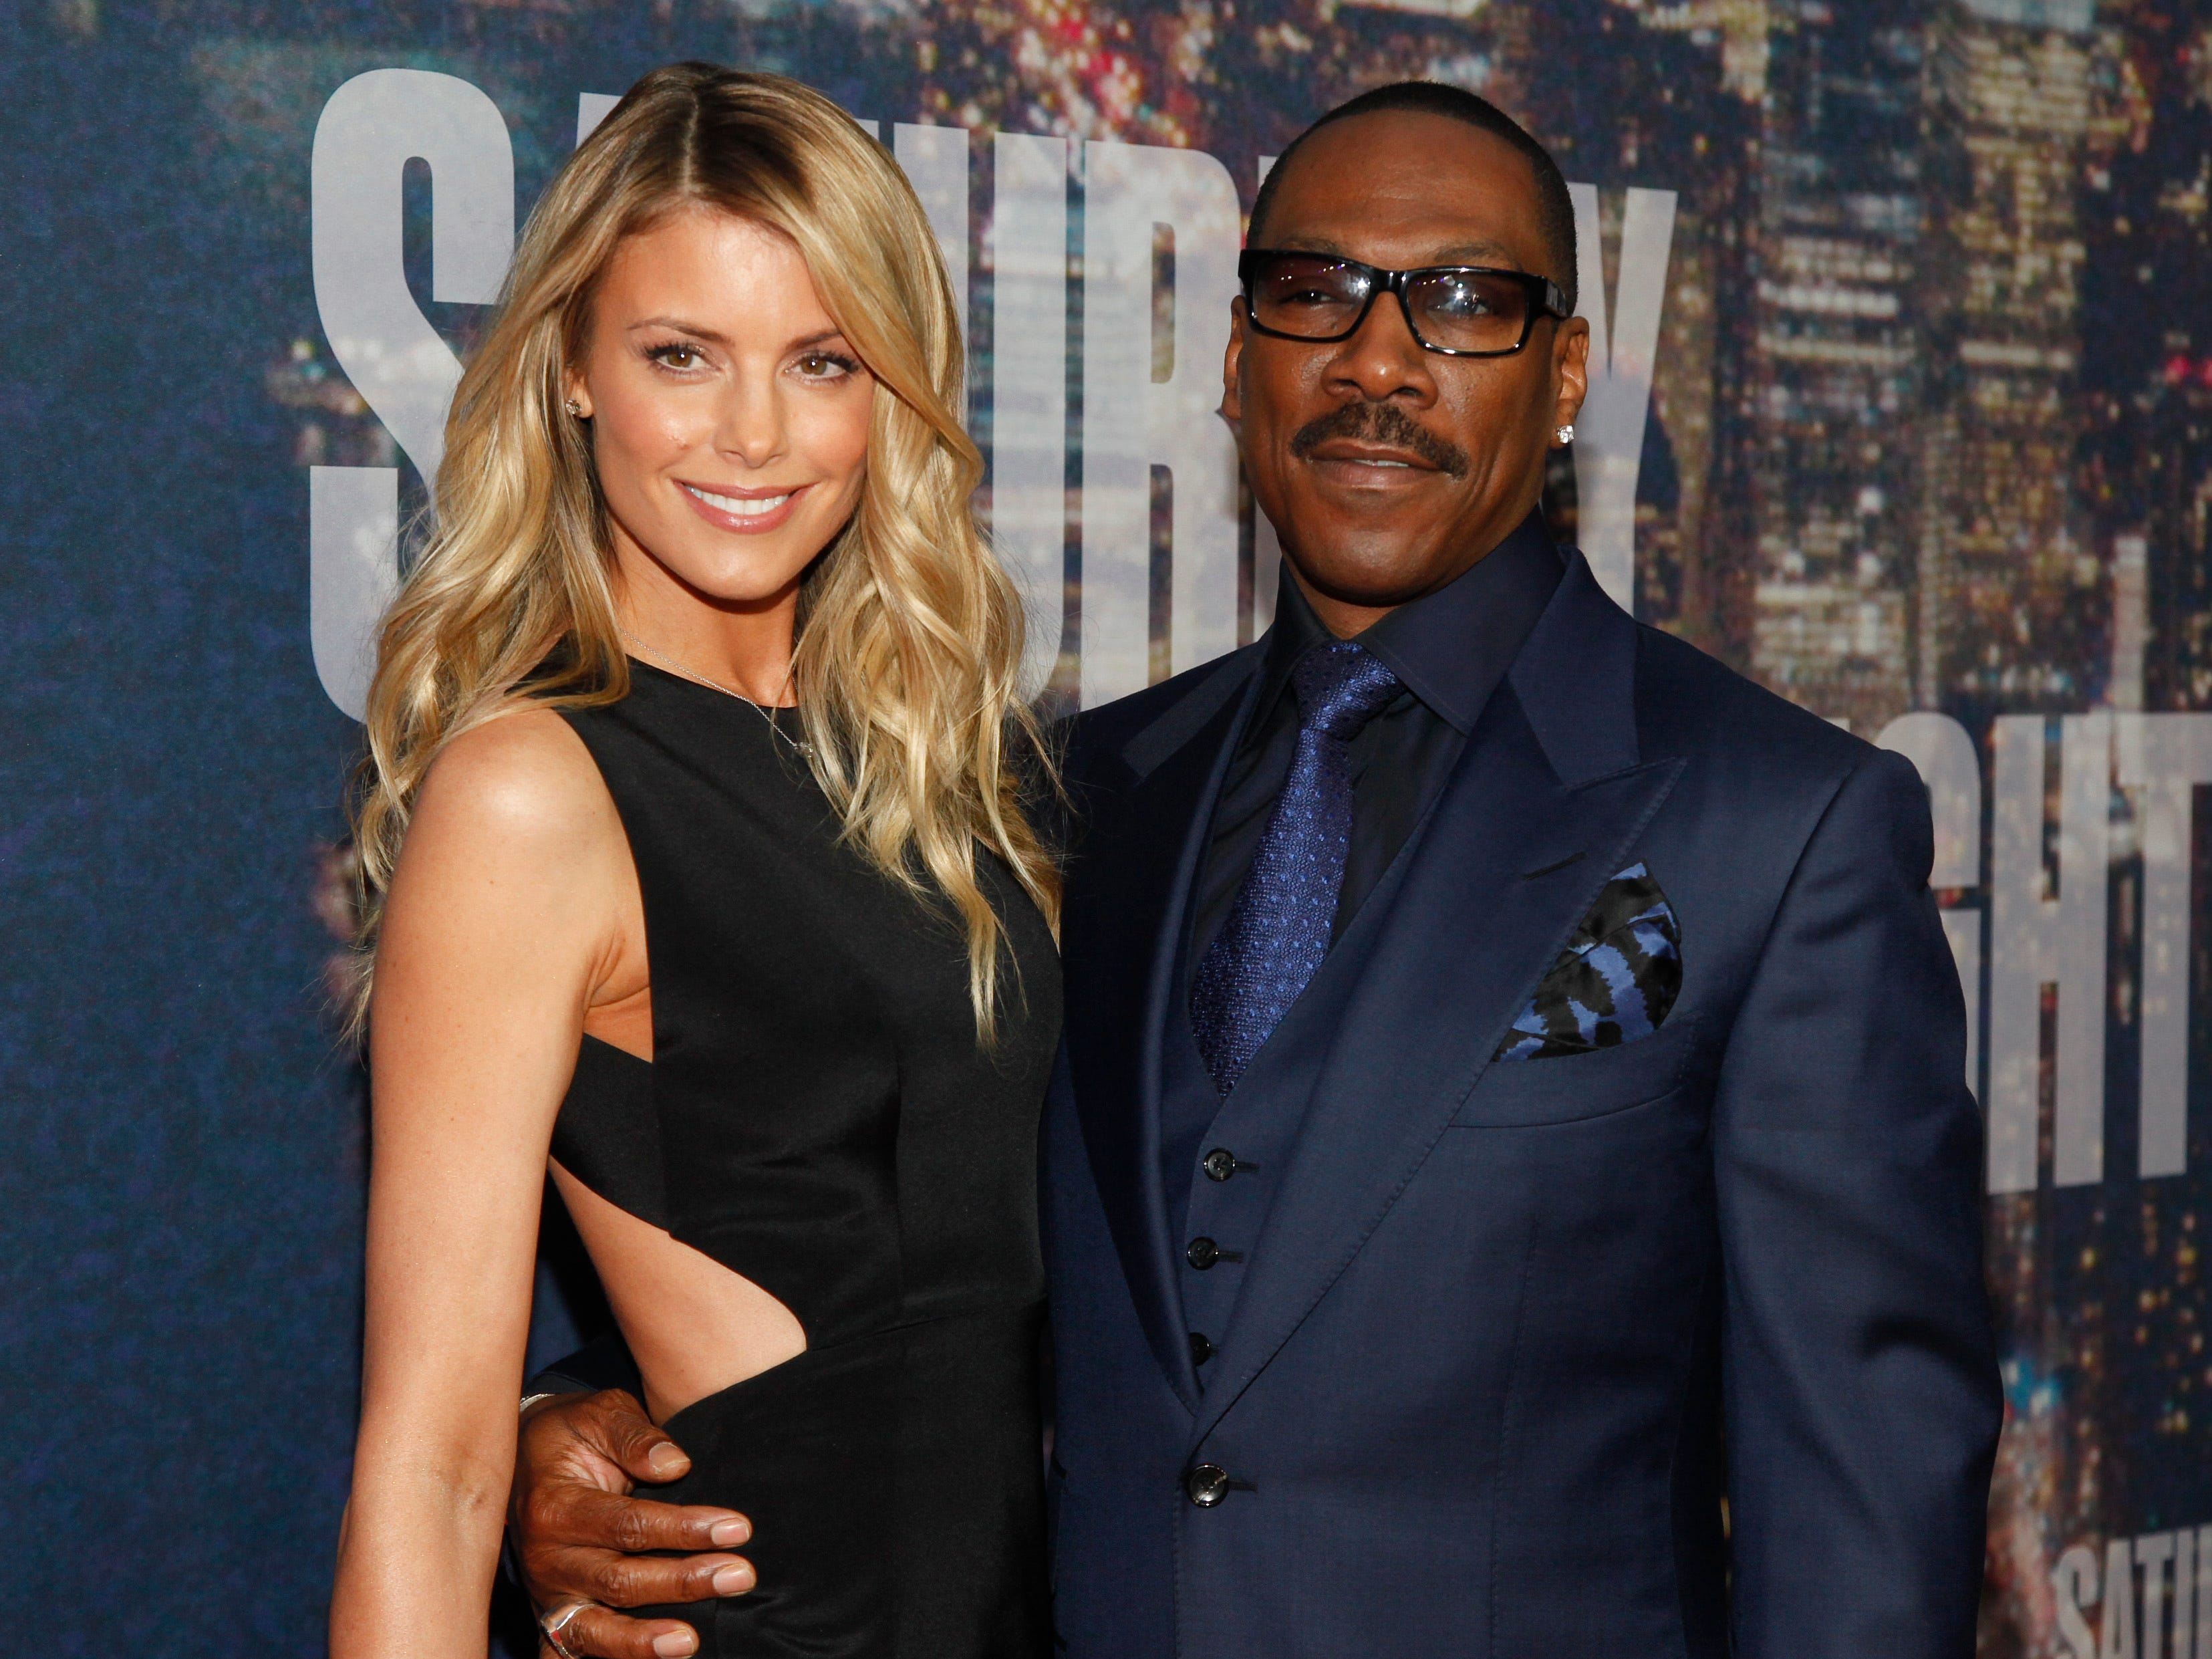 Reports: Eddie Murphy expecting his 10th child at age 57, second with Paige Butcher